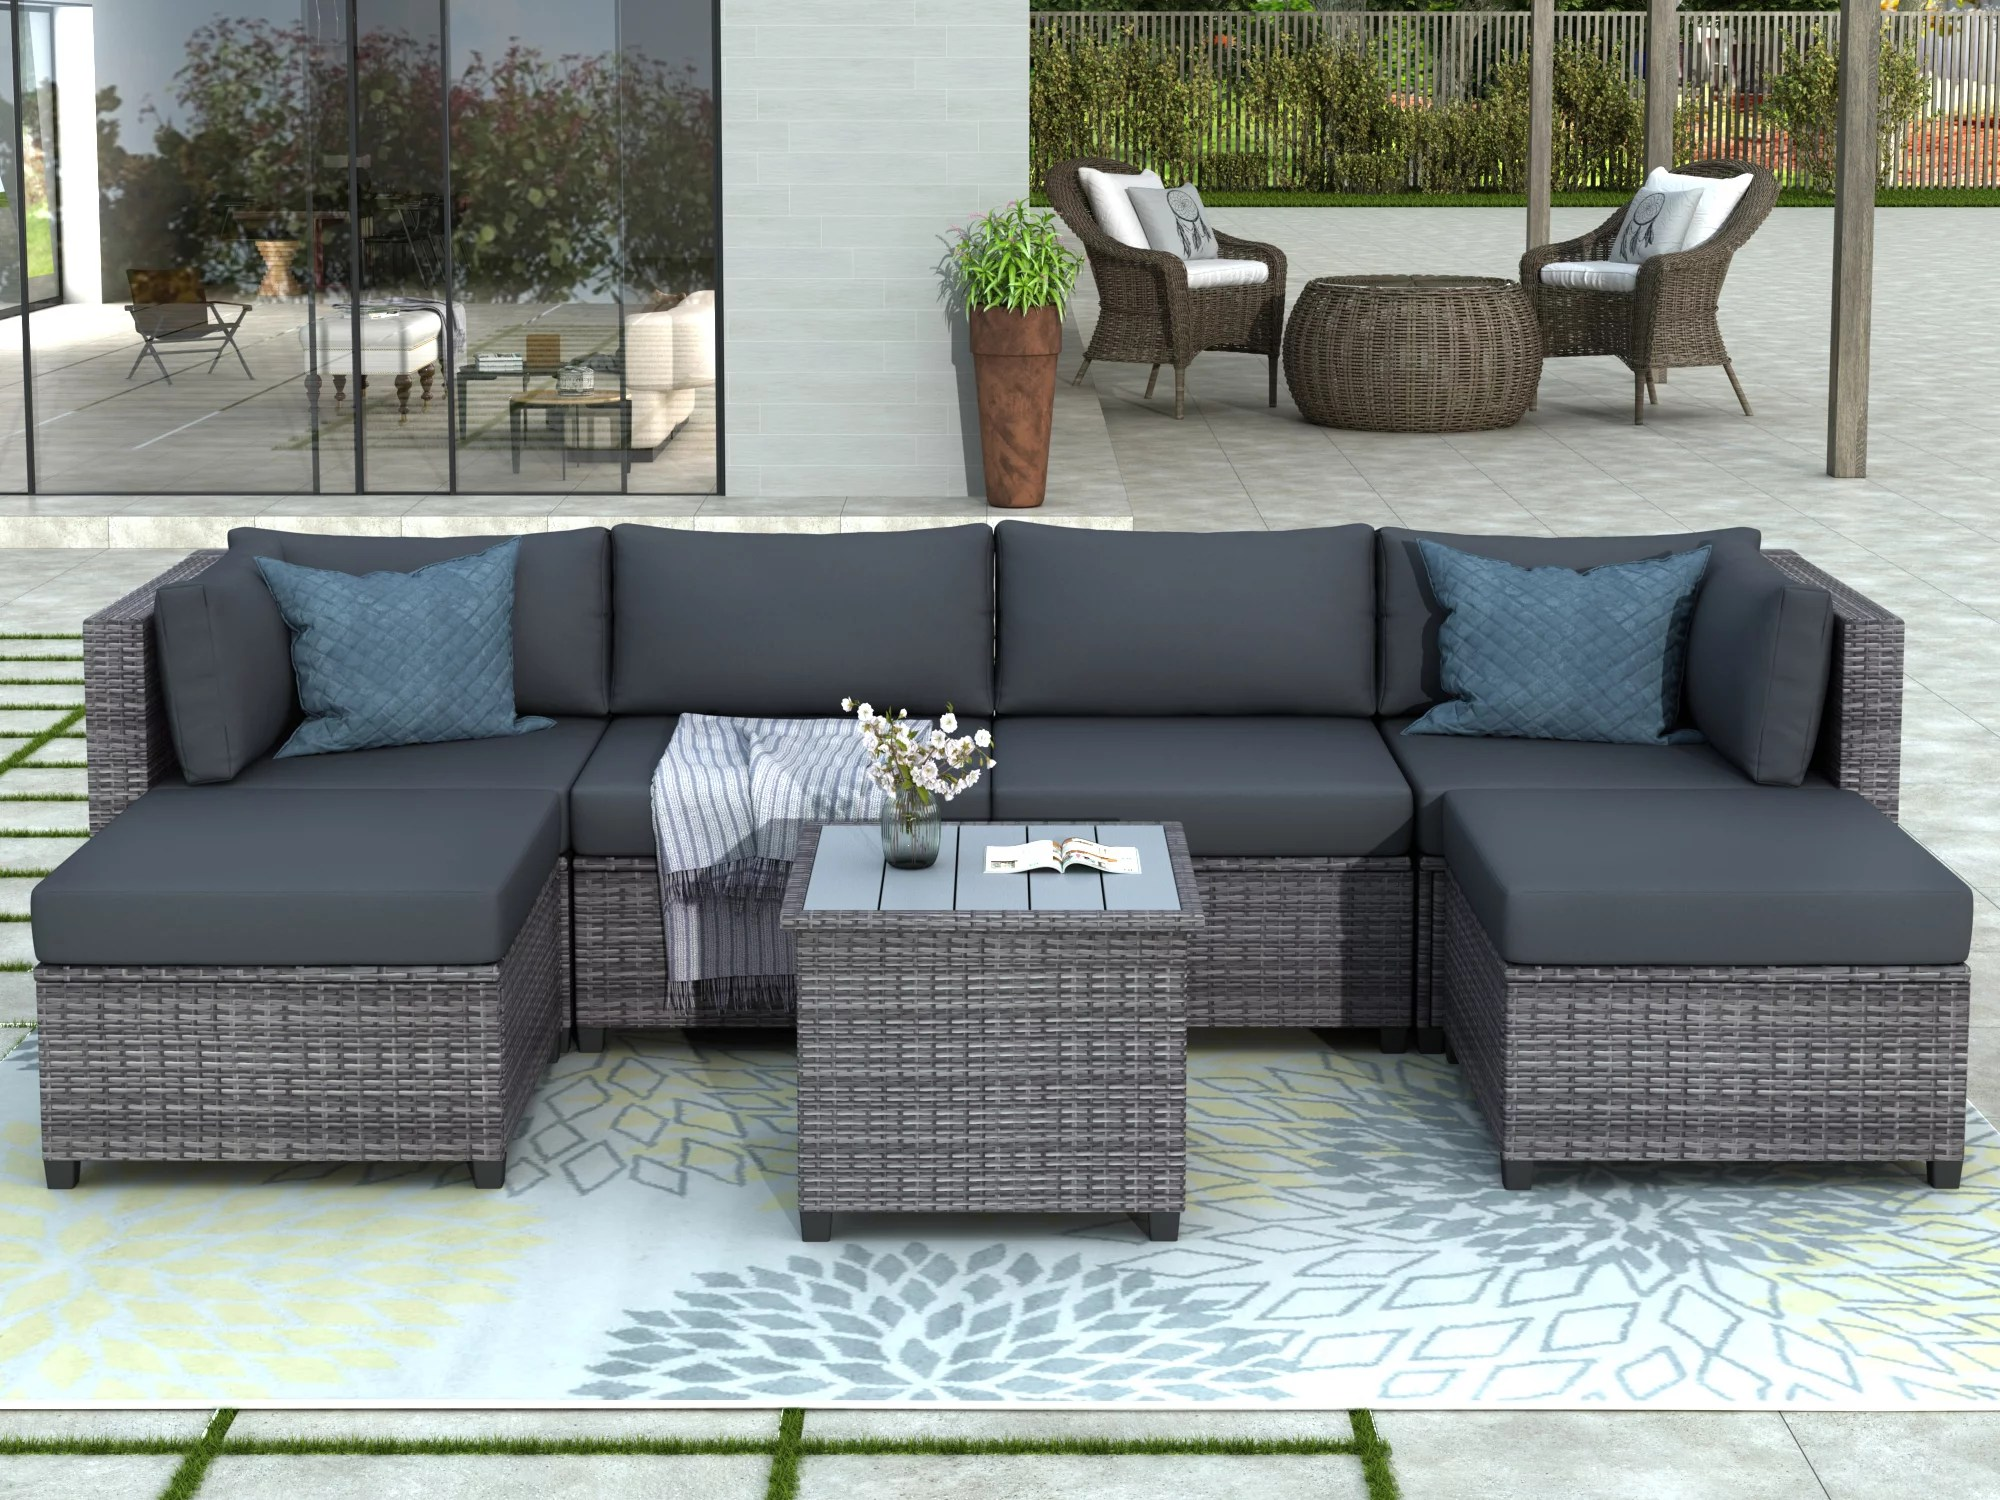 outdoor patio deck sectional sofa sets segmart newest 7 on walmart bedroom furniture clearance id=30138